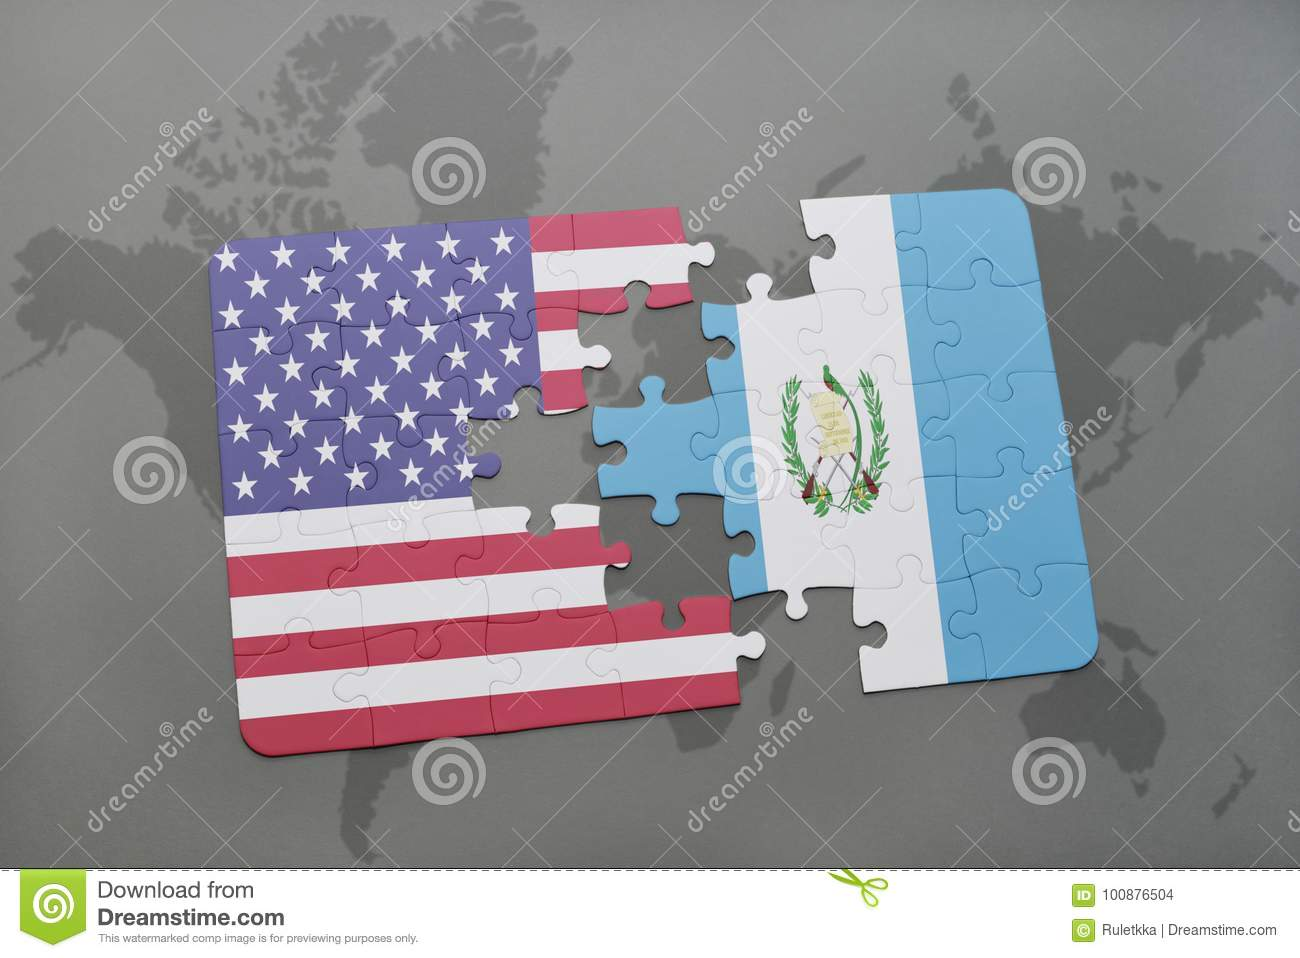 Puzzle With The National Flag Of United States Of America ... on ireland us map, netherlands us map, malawi us map, ukraine us map, mount mckinley us map, el salvador us map, chile us map, italy us map, yukon river us map, portugal us map, central time zone us map, egypt us map, caribbean us map, jersey us map, olympic mountains us map, moldova us map, united states us map, myrtle beach south carolina us map, martinique us map, north america us map,